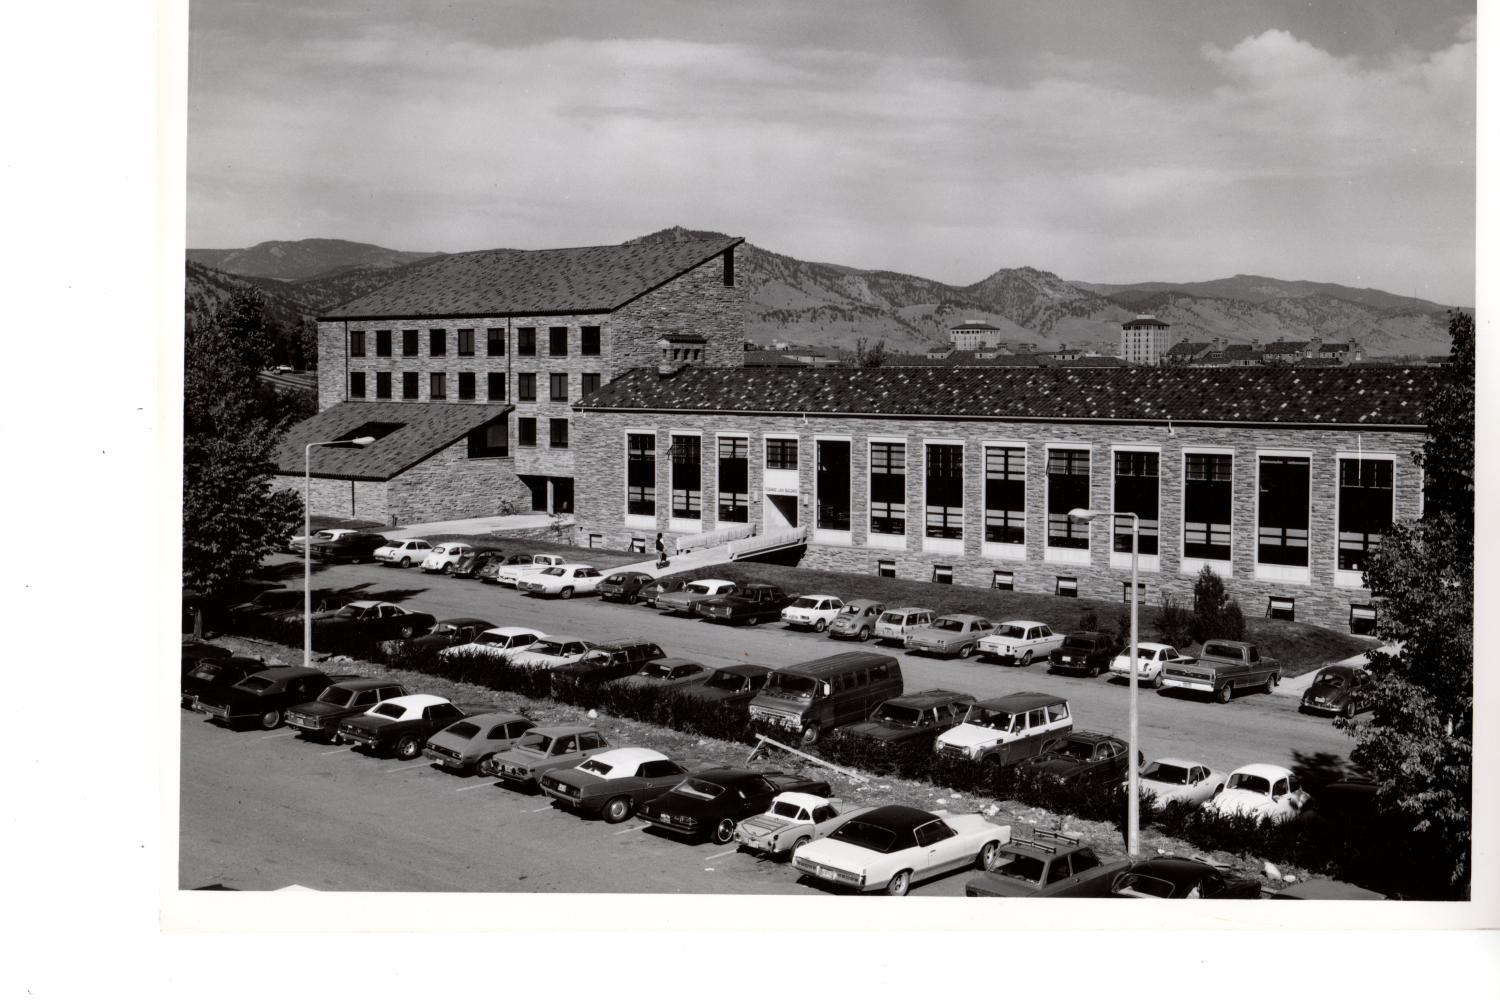 Fleming Law Building, located on the opposite end of campus from the previous three buildings, housed the law school from 1959 to 2006. In 1974, the West Classroom Office Tower and Rothgerber Memorial Library were added.